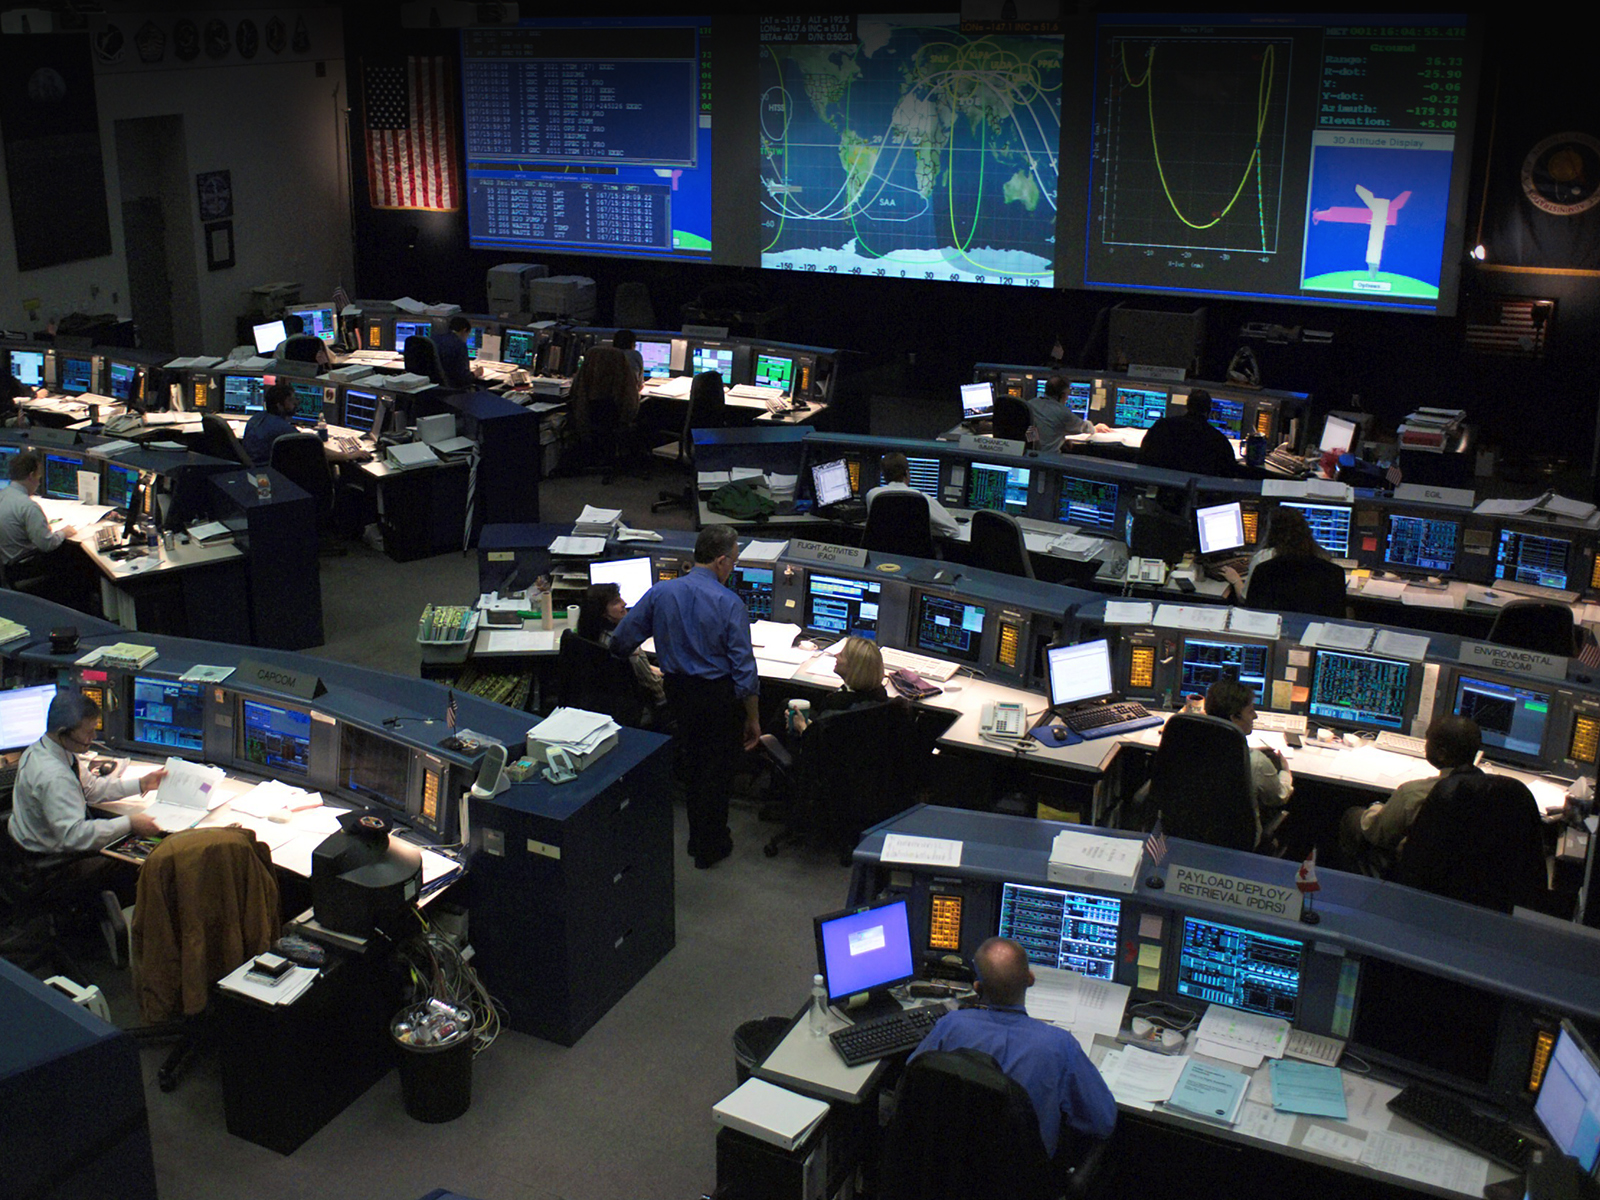 houston space station controls - photo #28